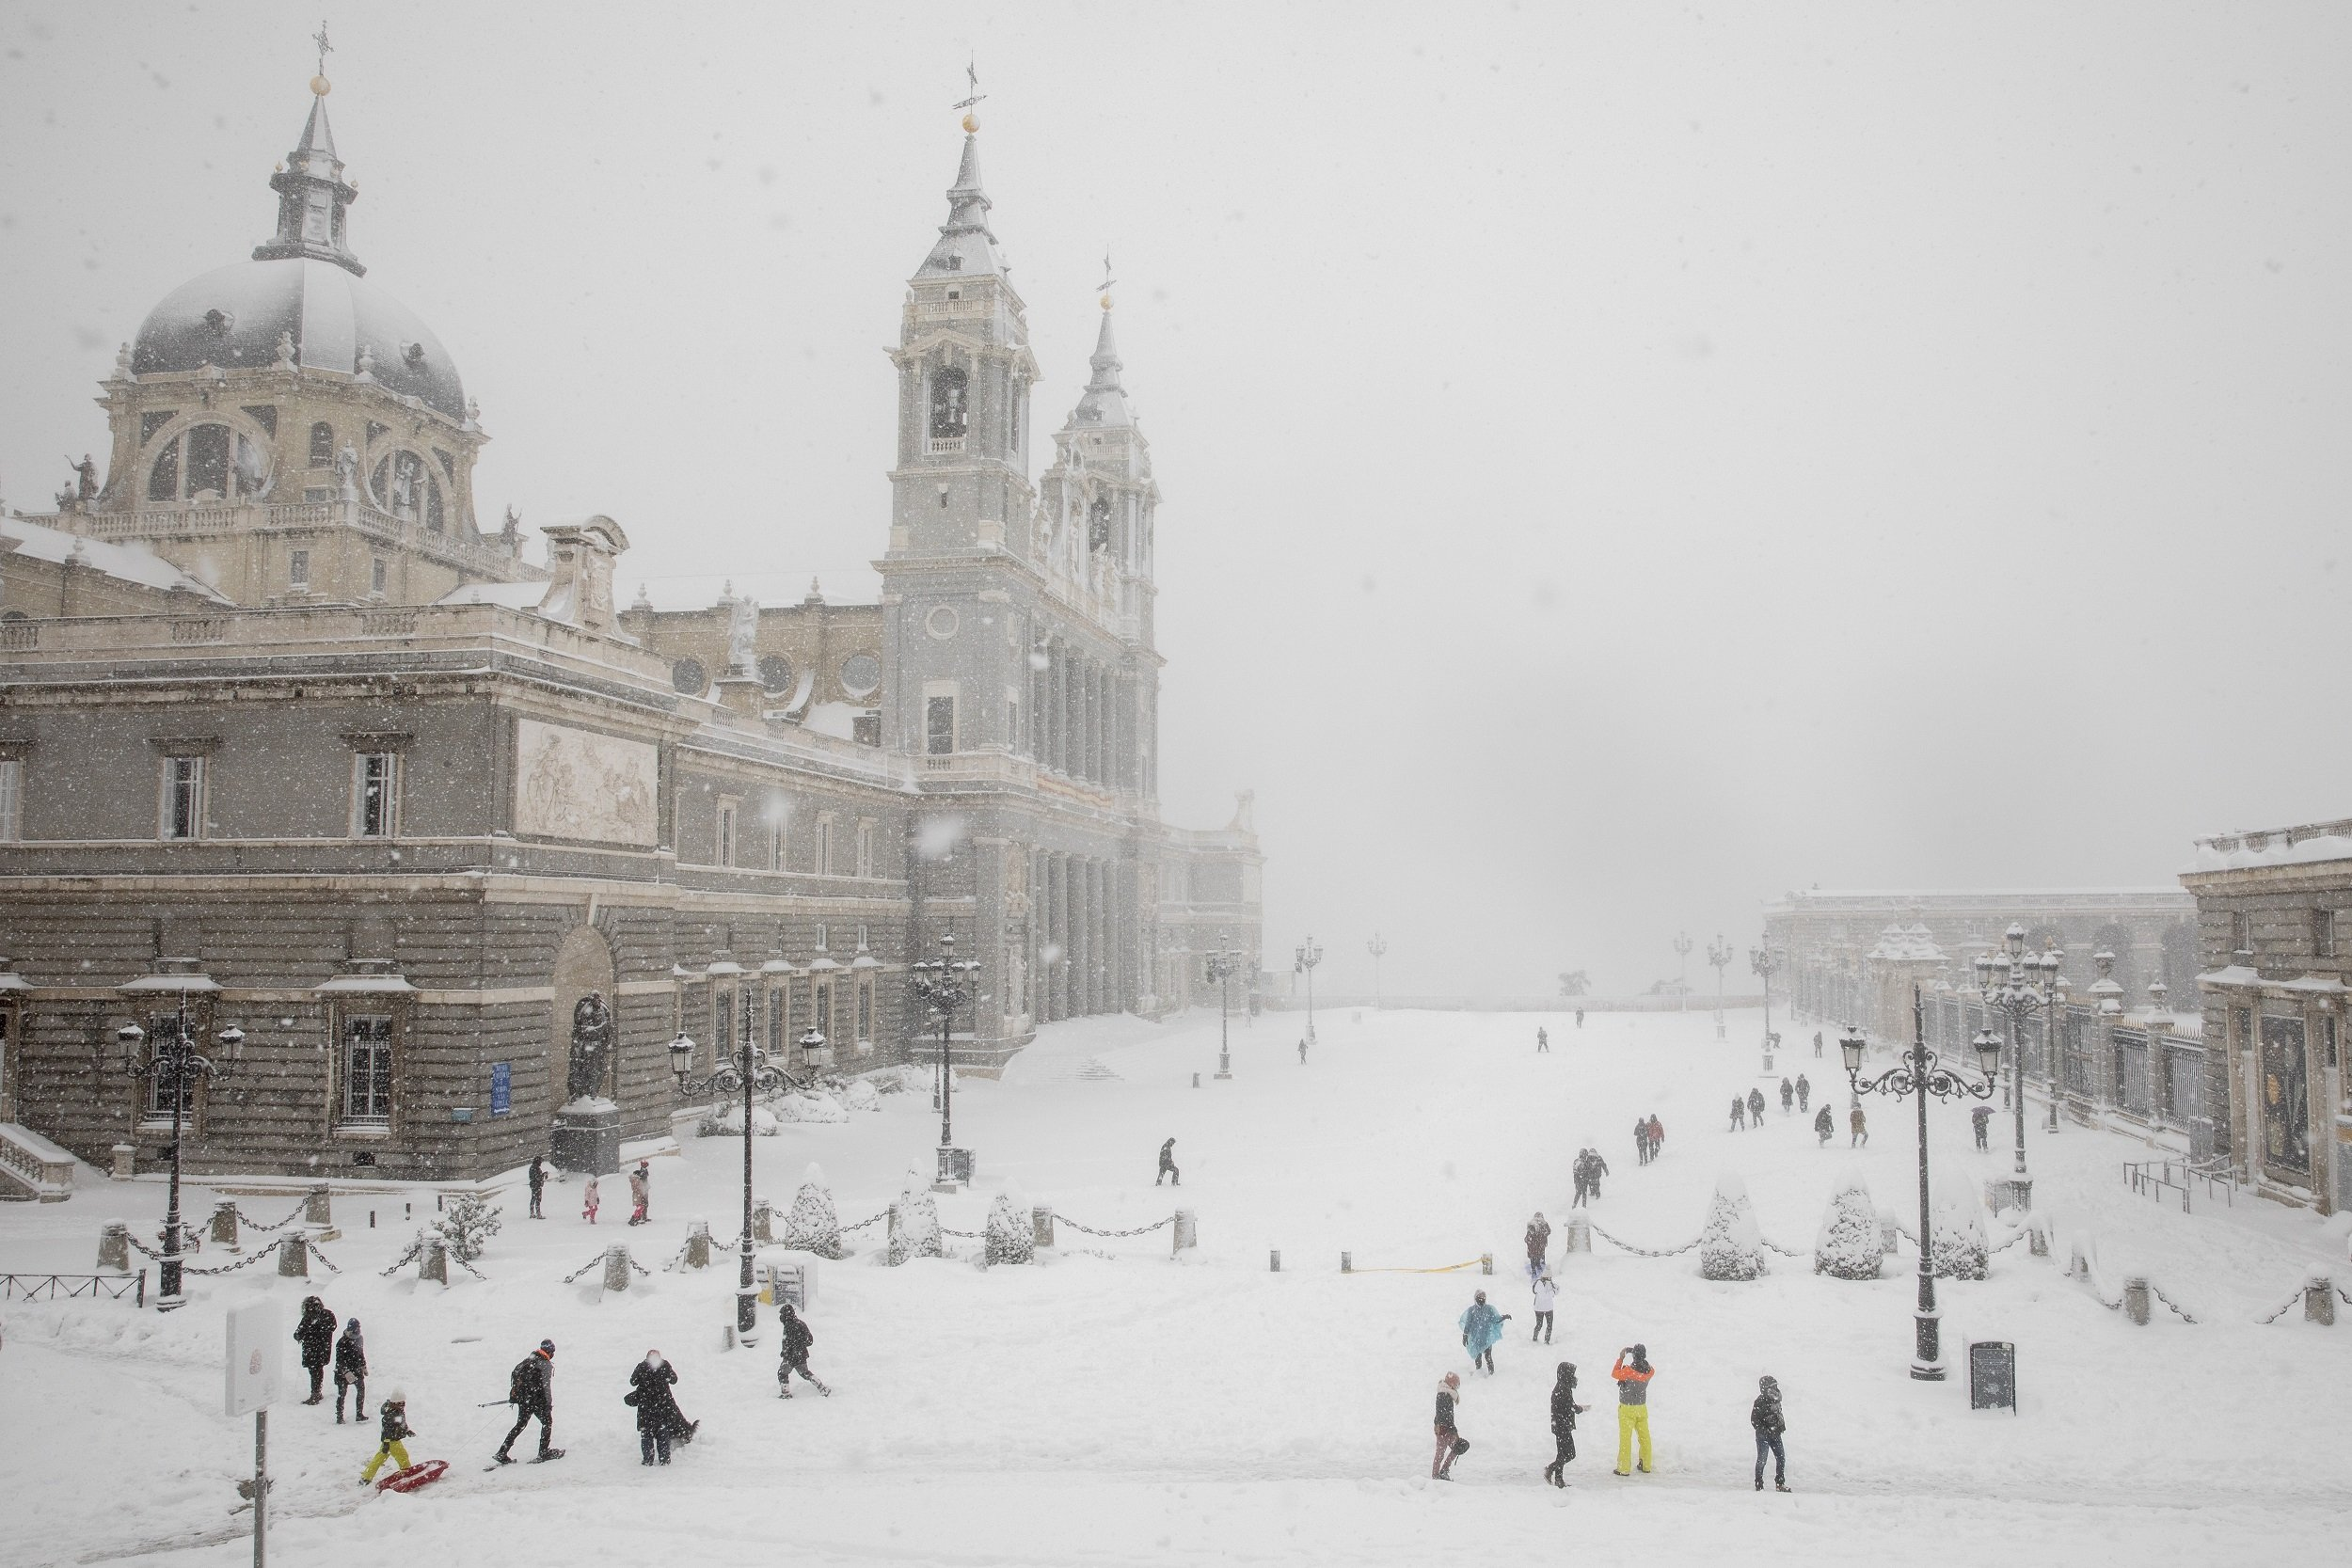 Catedral de La Almudena tras nevada en Madrid en enero de 2021. | Foto: Getty Images